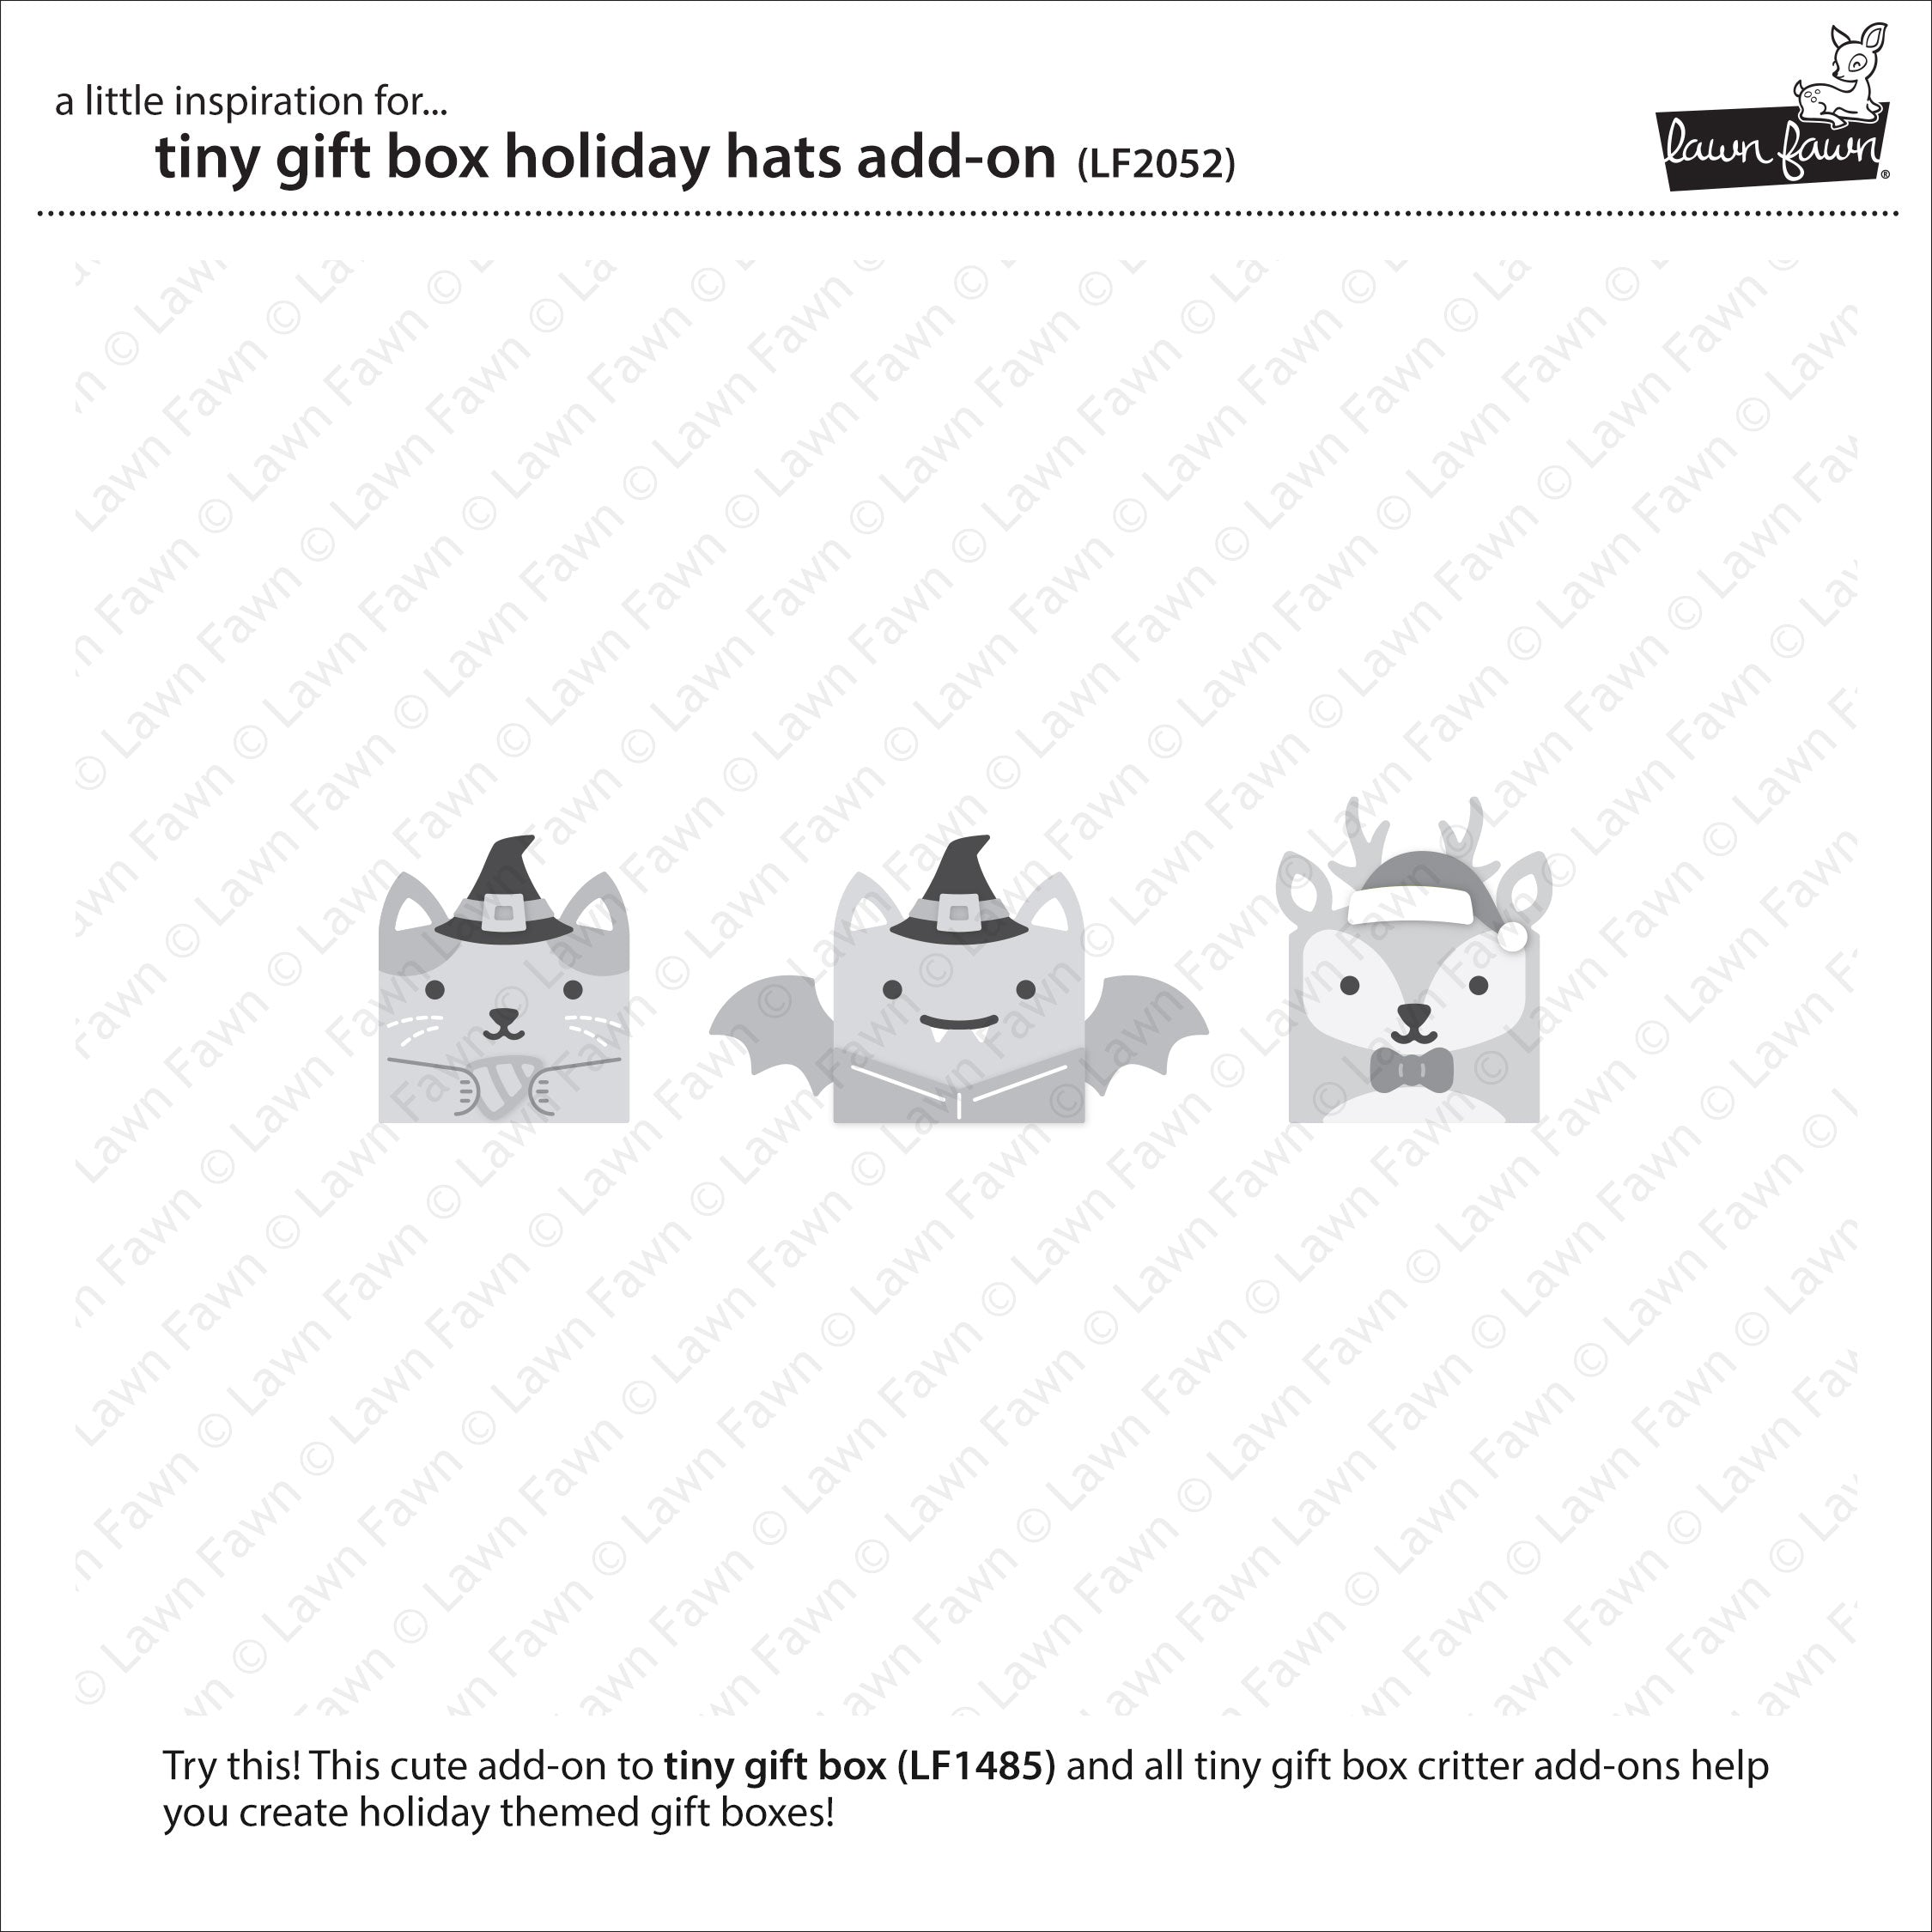 tiny gift box holiday hats add-on